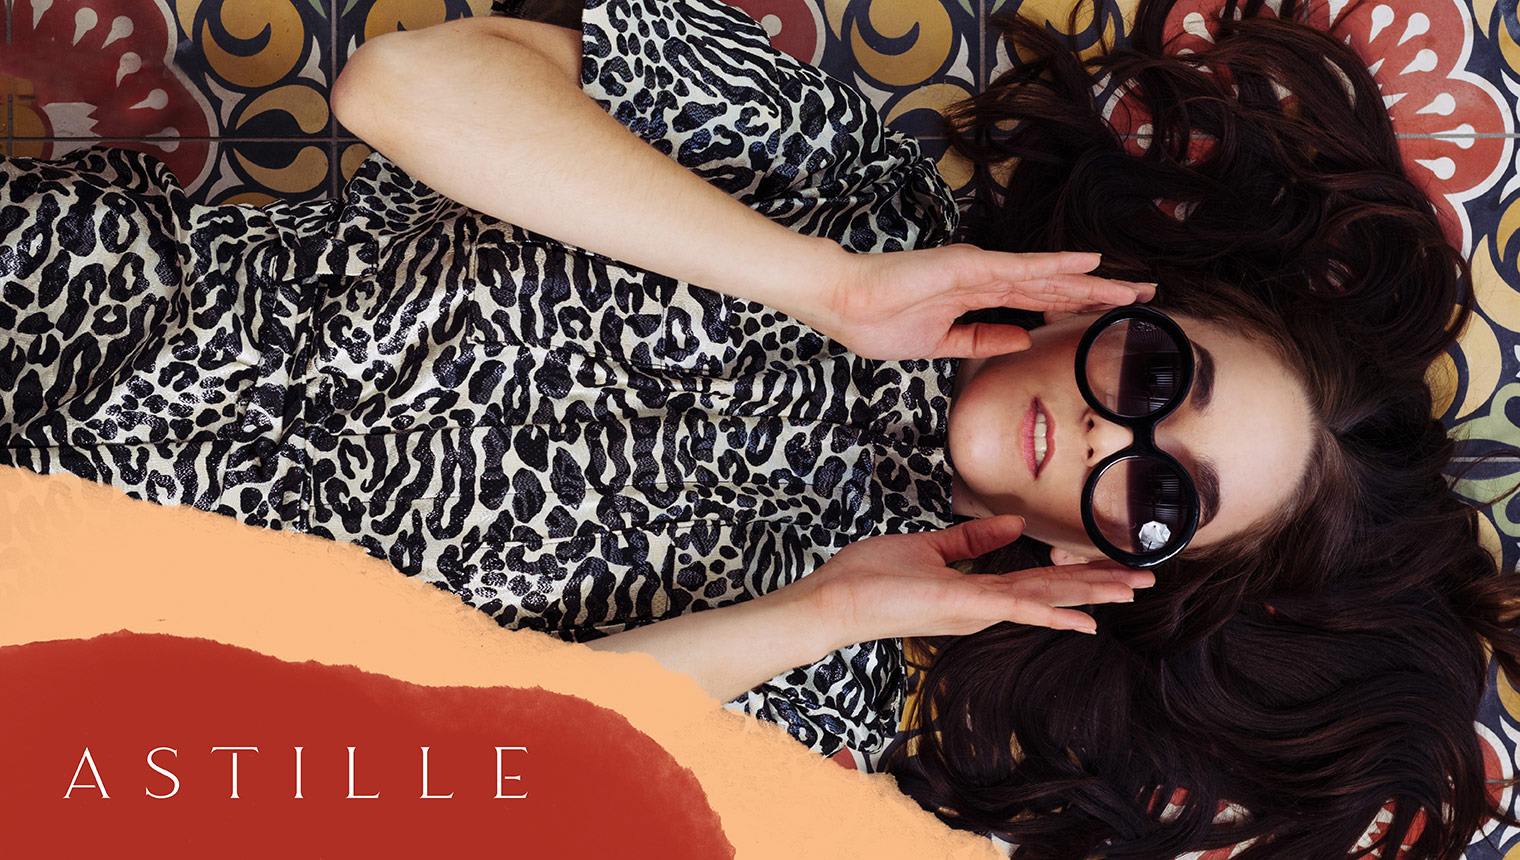 Astille model in animal print boiler suite with supporting graphics and brand logo